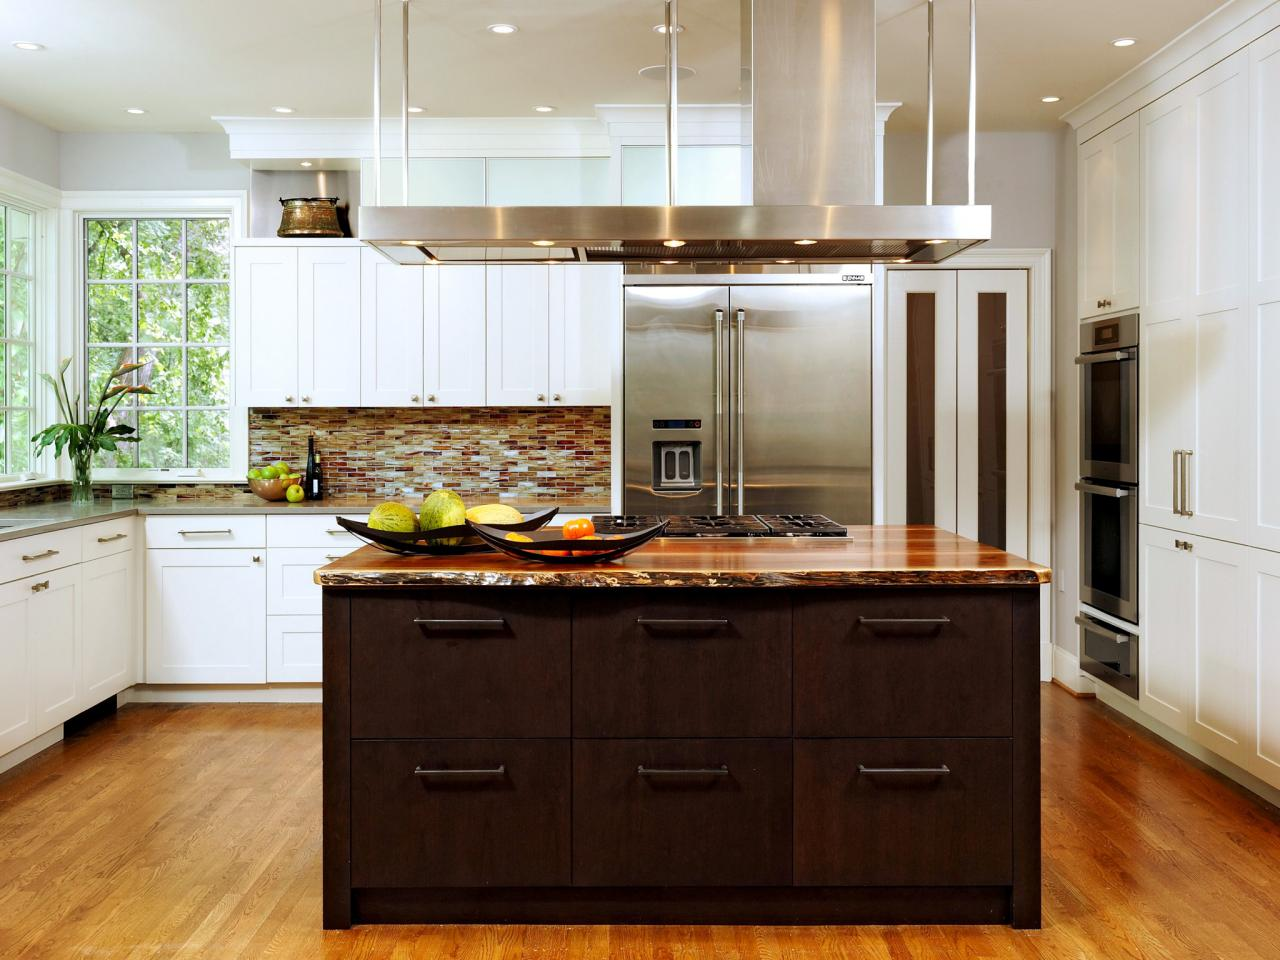 Http People Hgtv Com Professionals Lauren Levant Bland Projects Contemporary Kitchen Remodel With A Rustic Touch